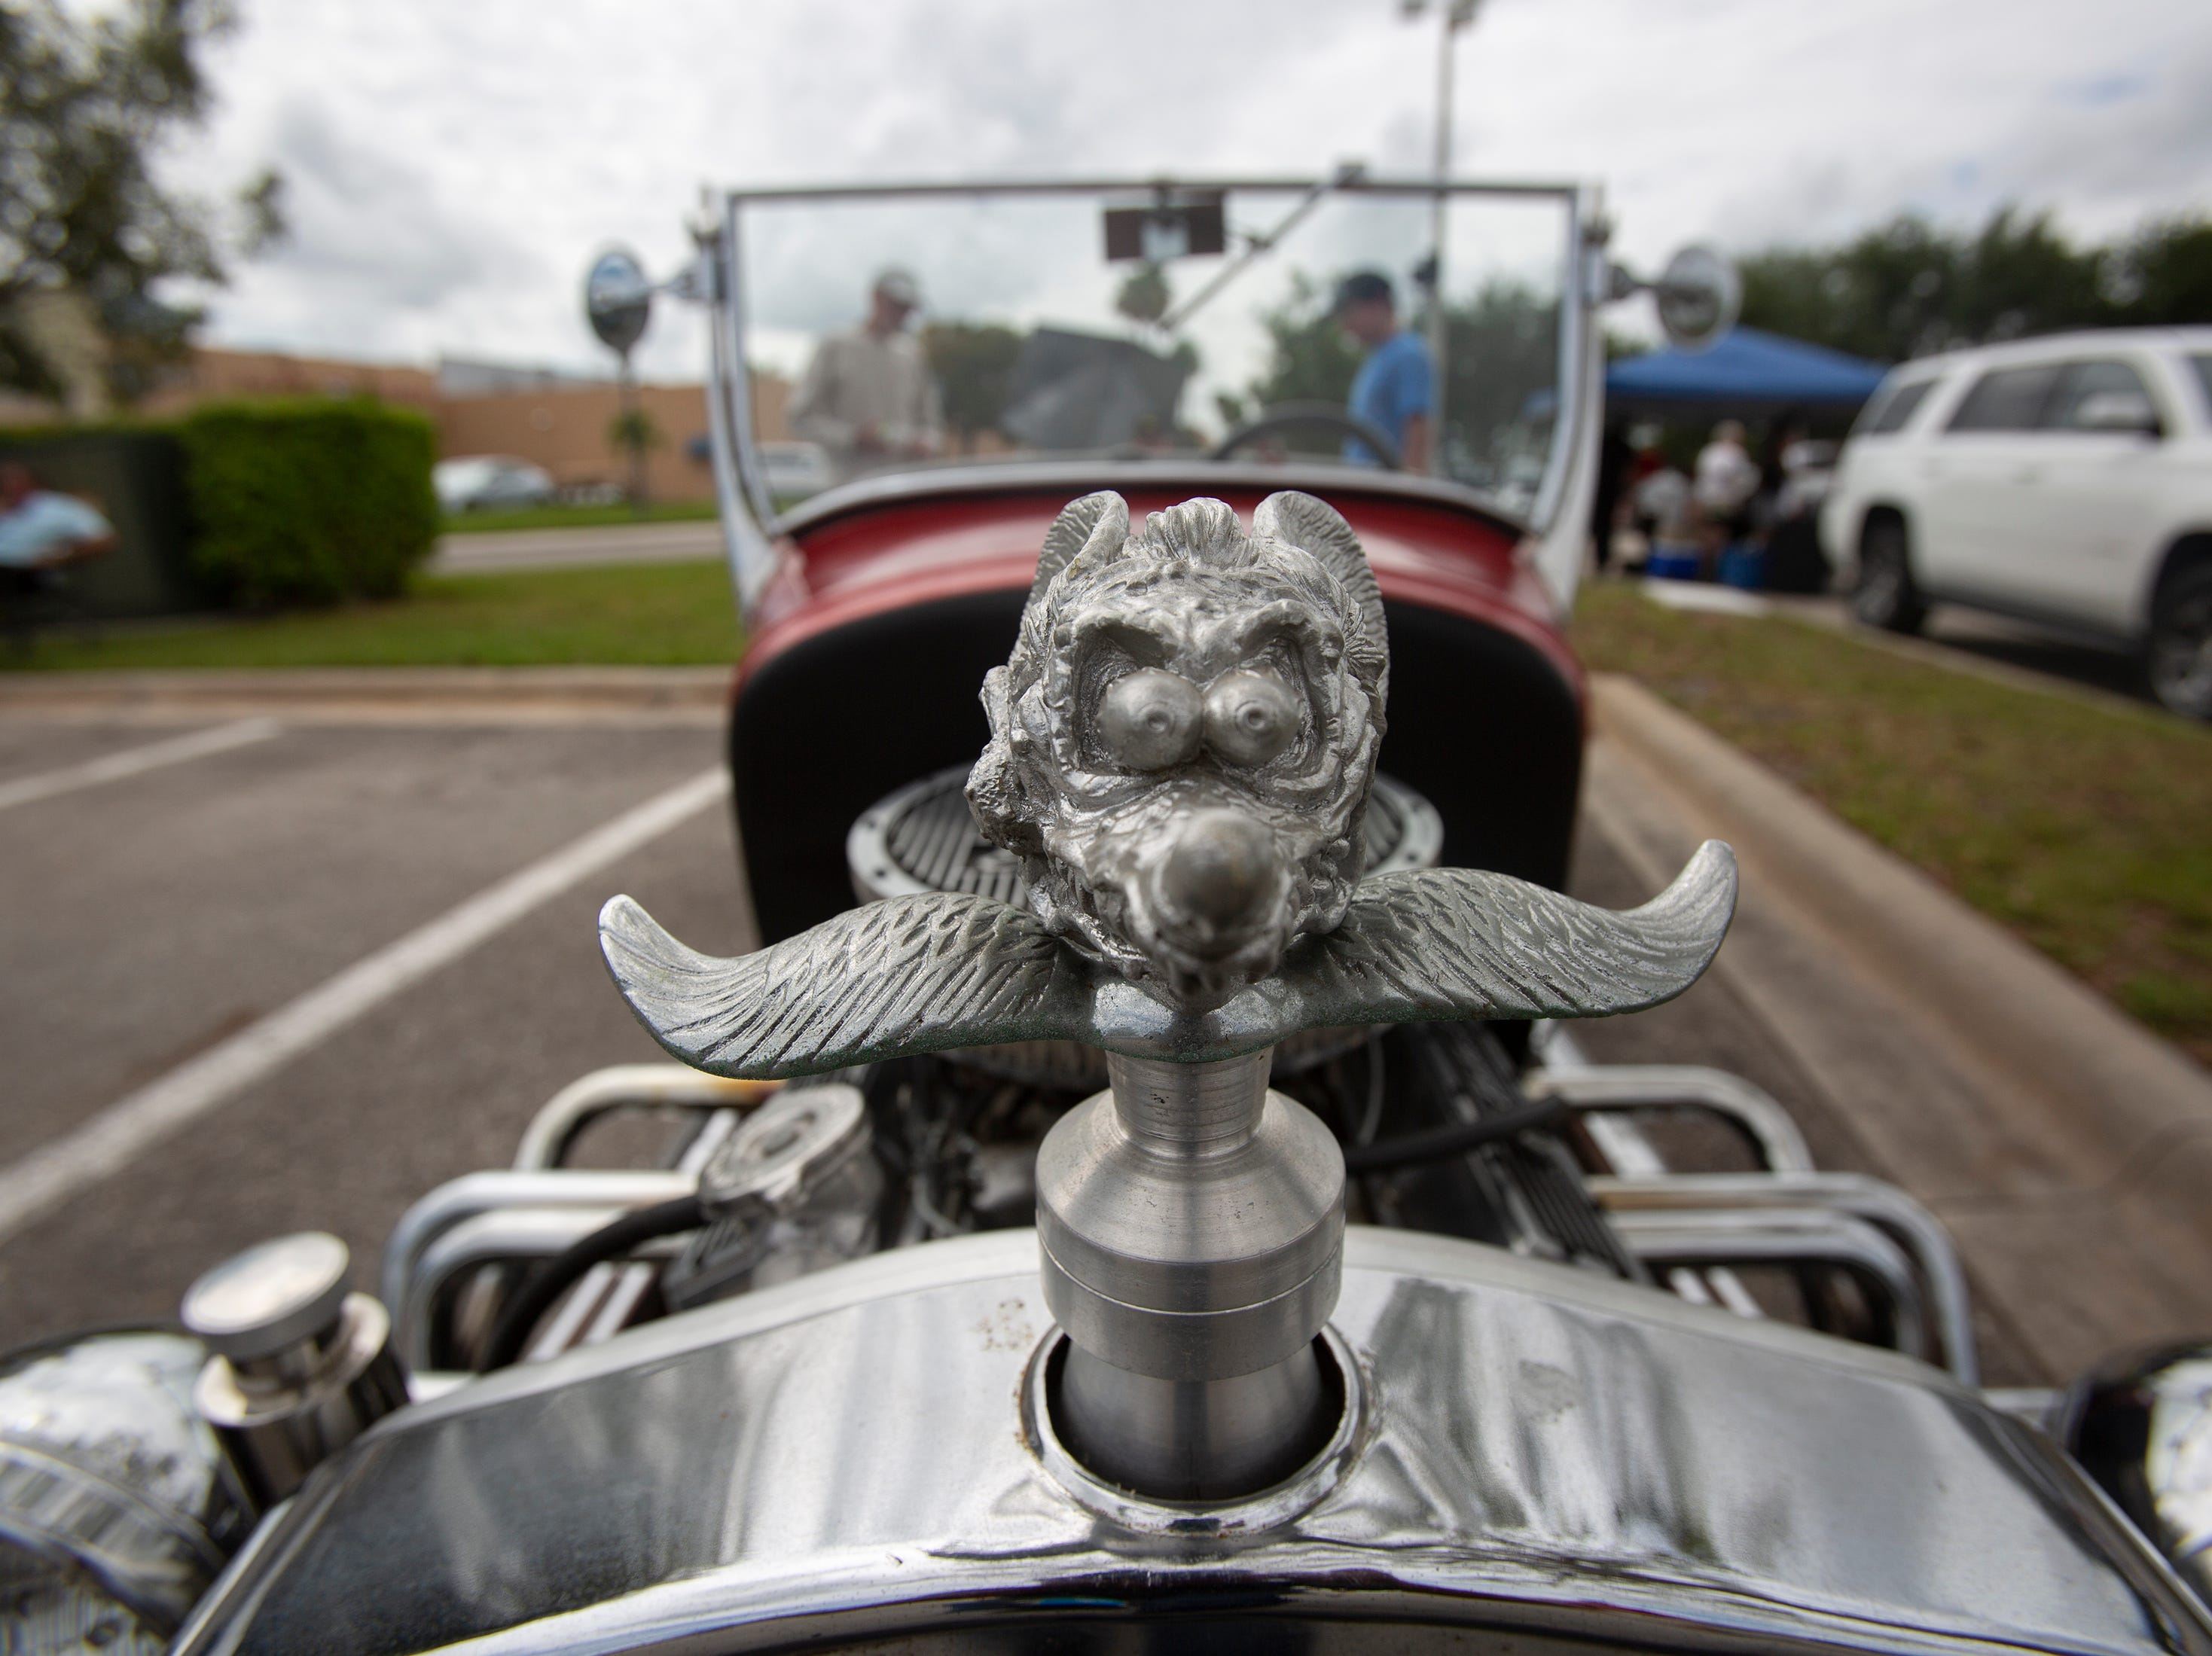 The hood ornament of 'Rat Fink' sits up front on Estero resident Ray Frank's 1927 replica Ford Model T during the Cruis'n for a Cause event on Saturday, April 13, 2019 at the Miromar Outlets in Estero.